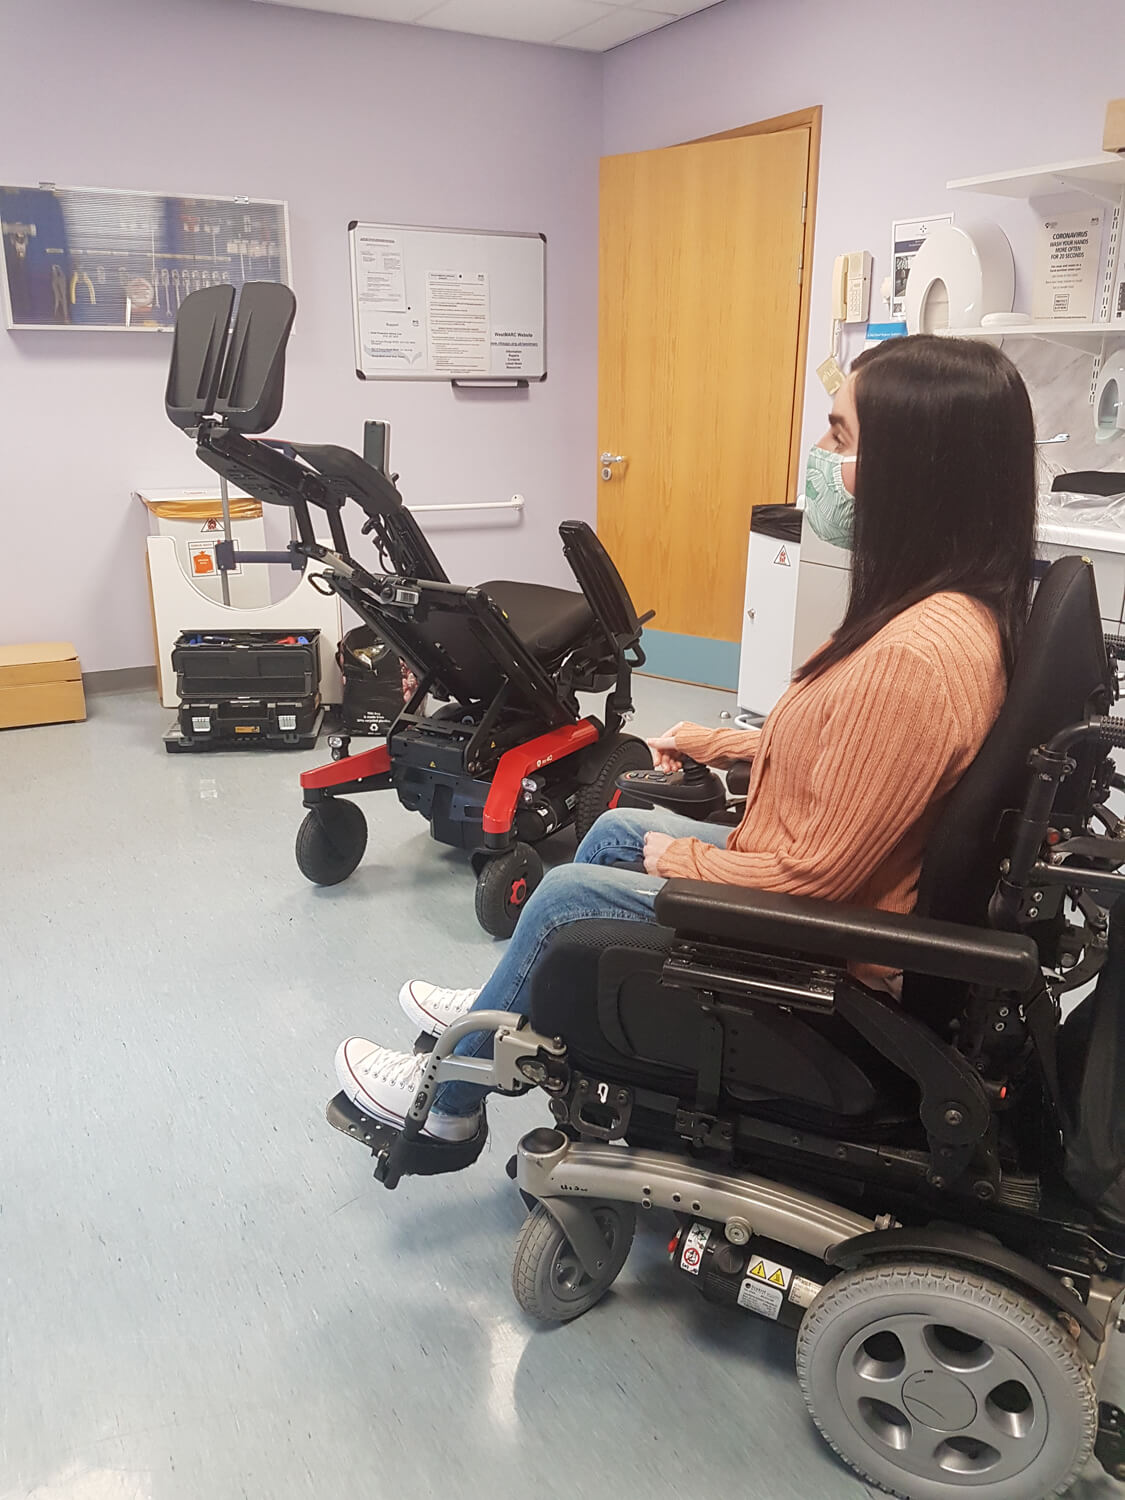 Emma, a white woman sitting in her powered wheelchair in a hospital consultation room. Emma is wearing a peach cardigan, skinny jeans and white converse shoes. Beside her is a black and red powered wheelchair which is reclined back with the footplates up.